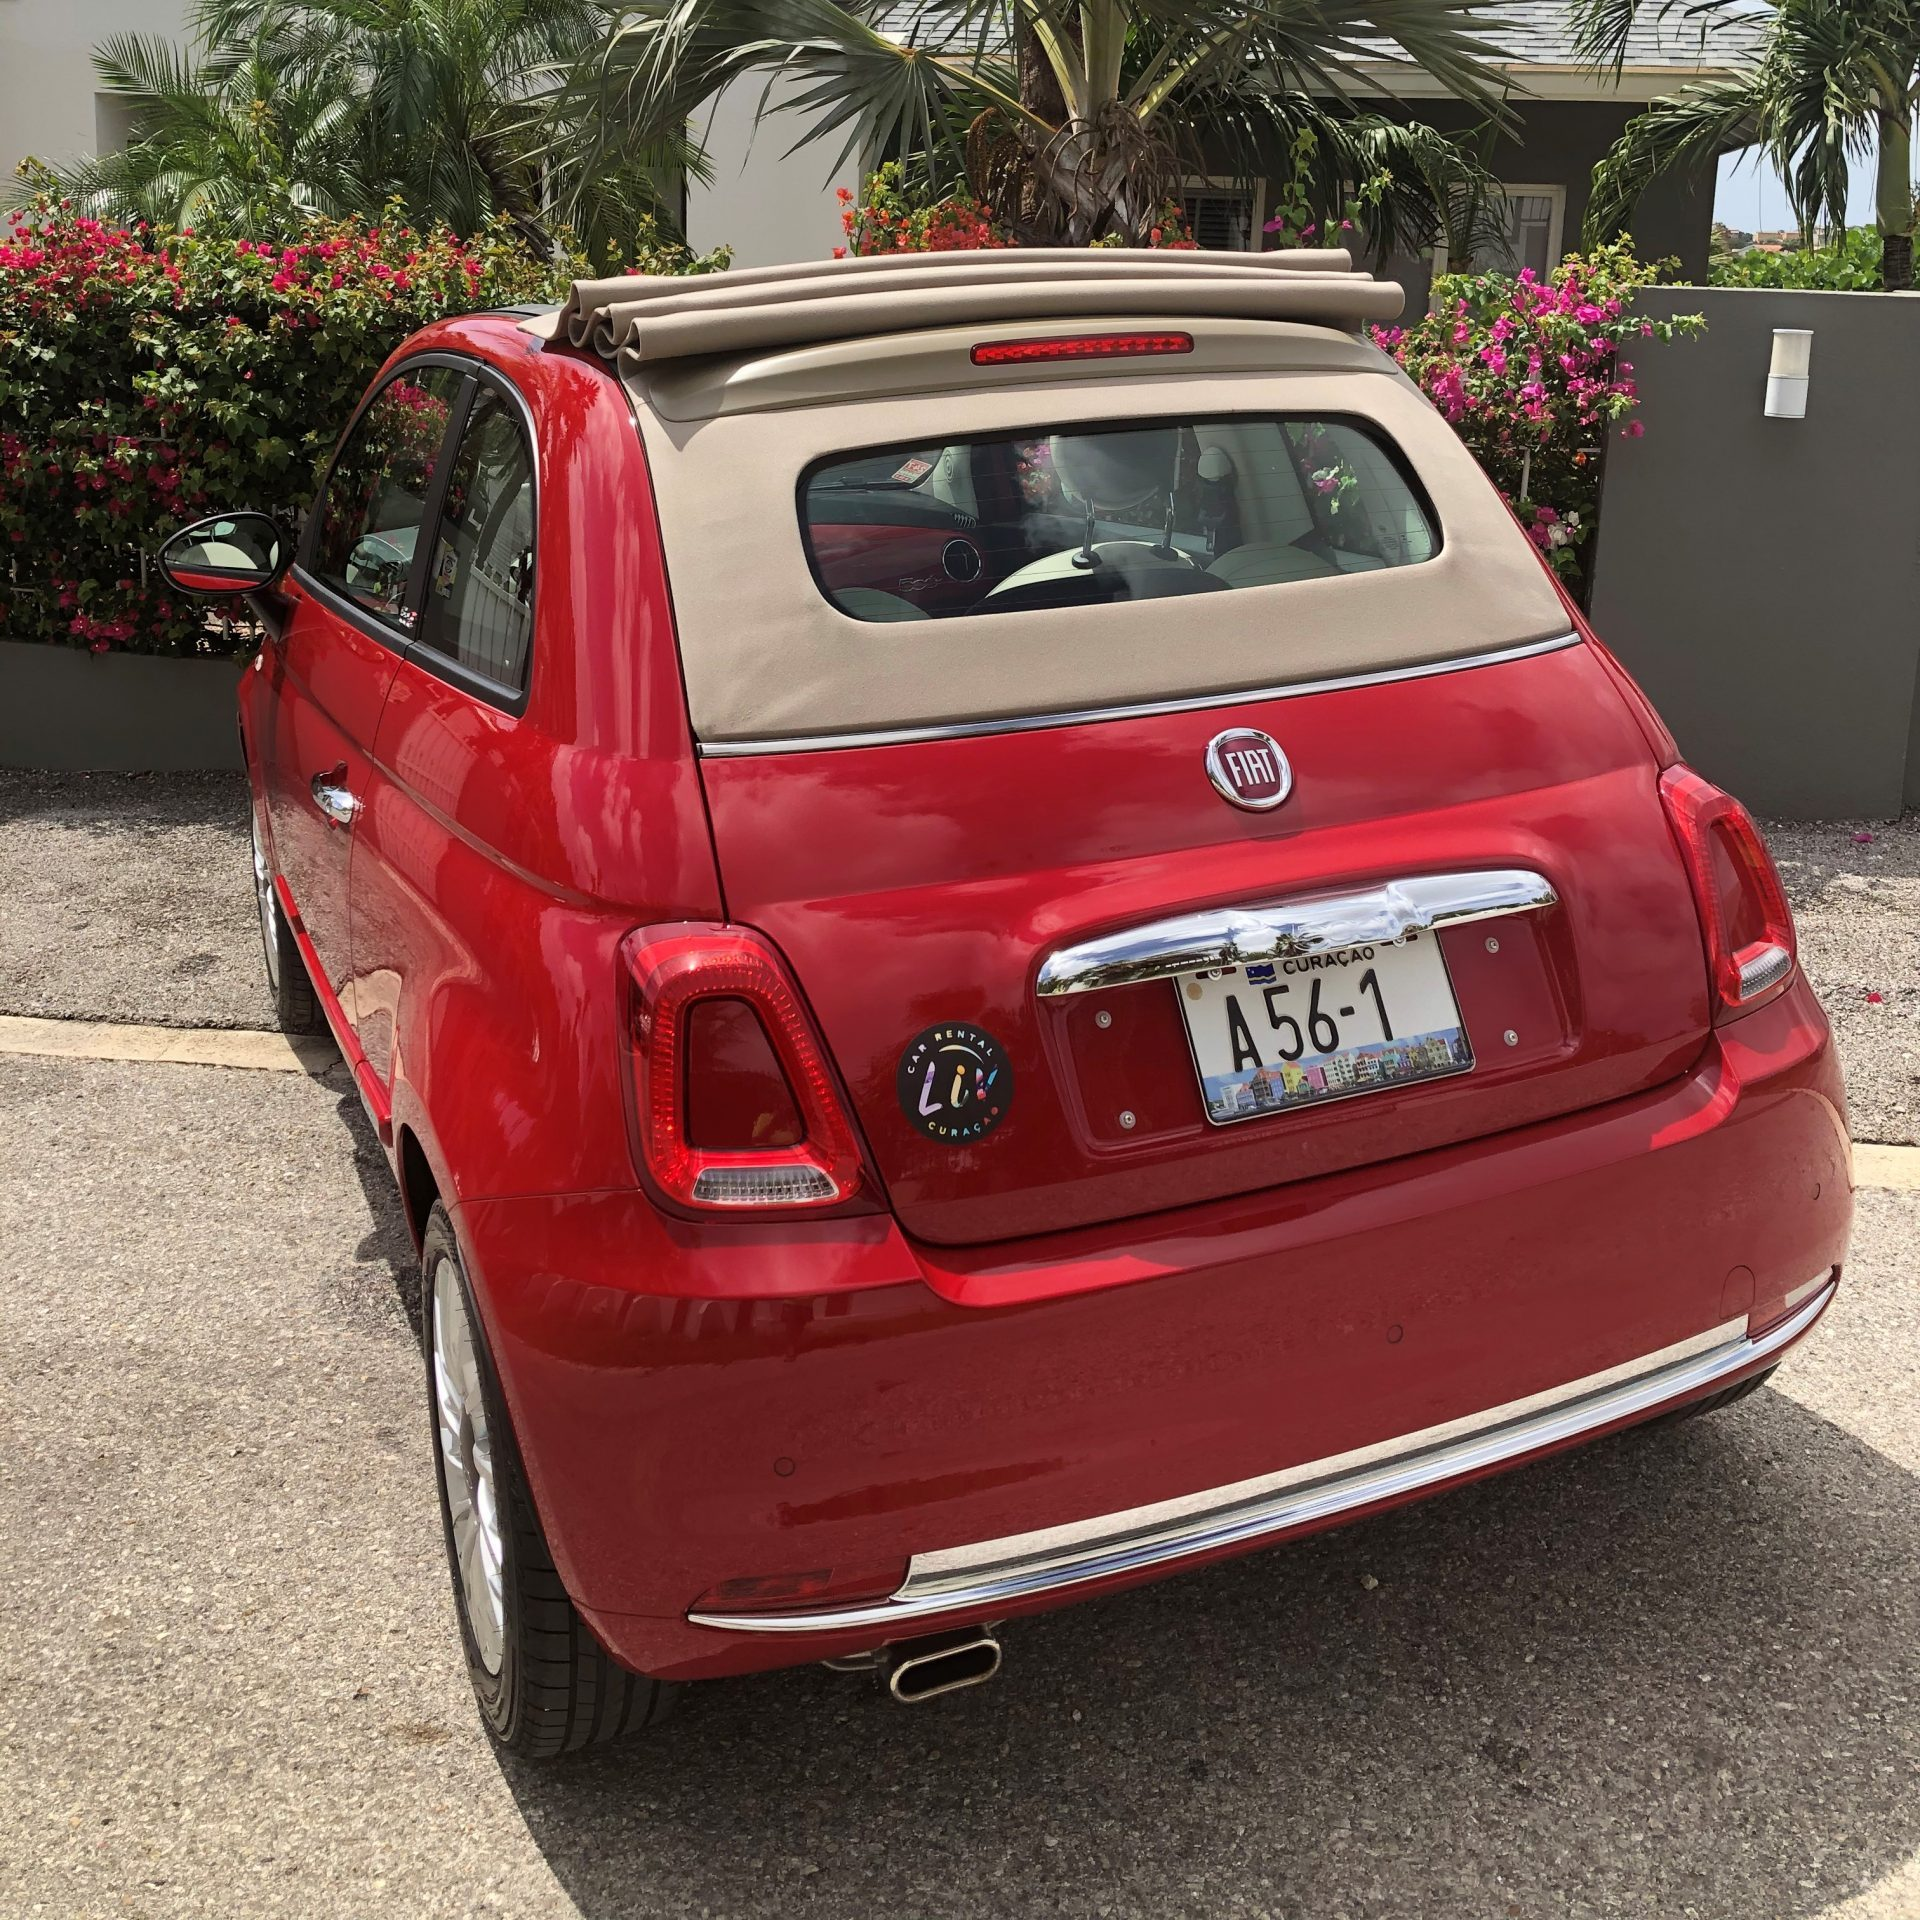 Fiat 500 cabrio red automatic - USD 60 p.d.*